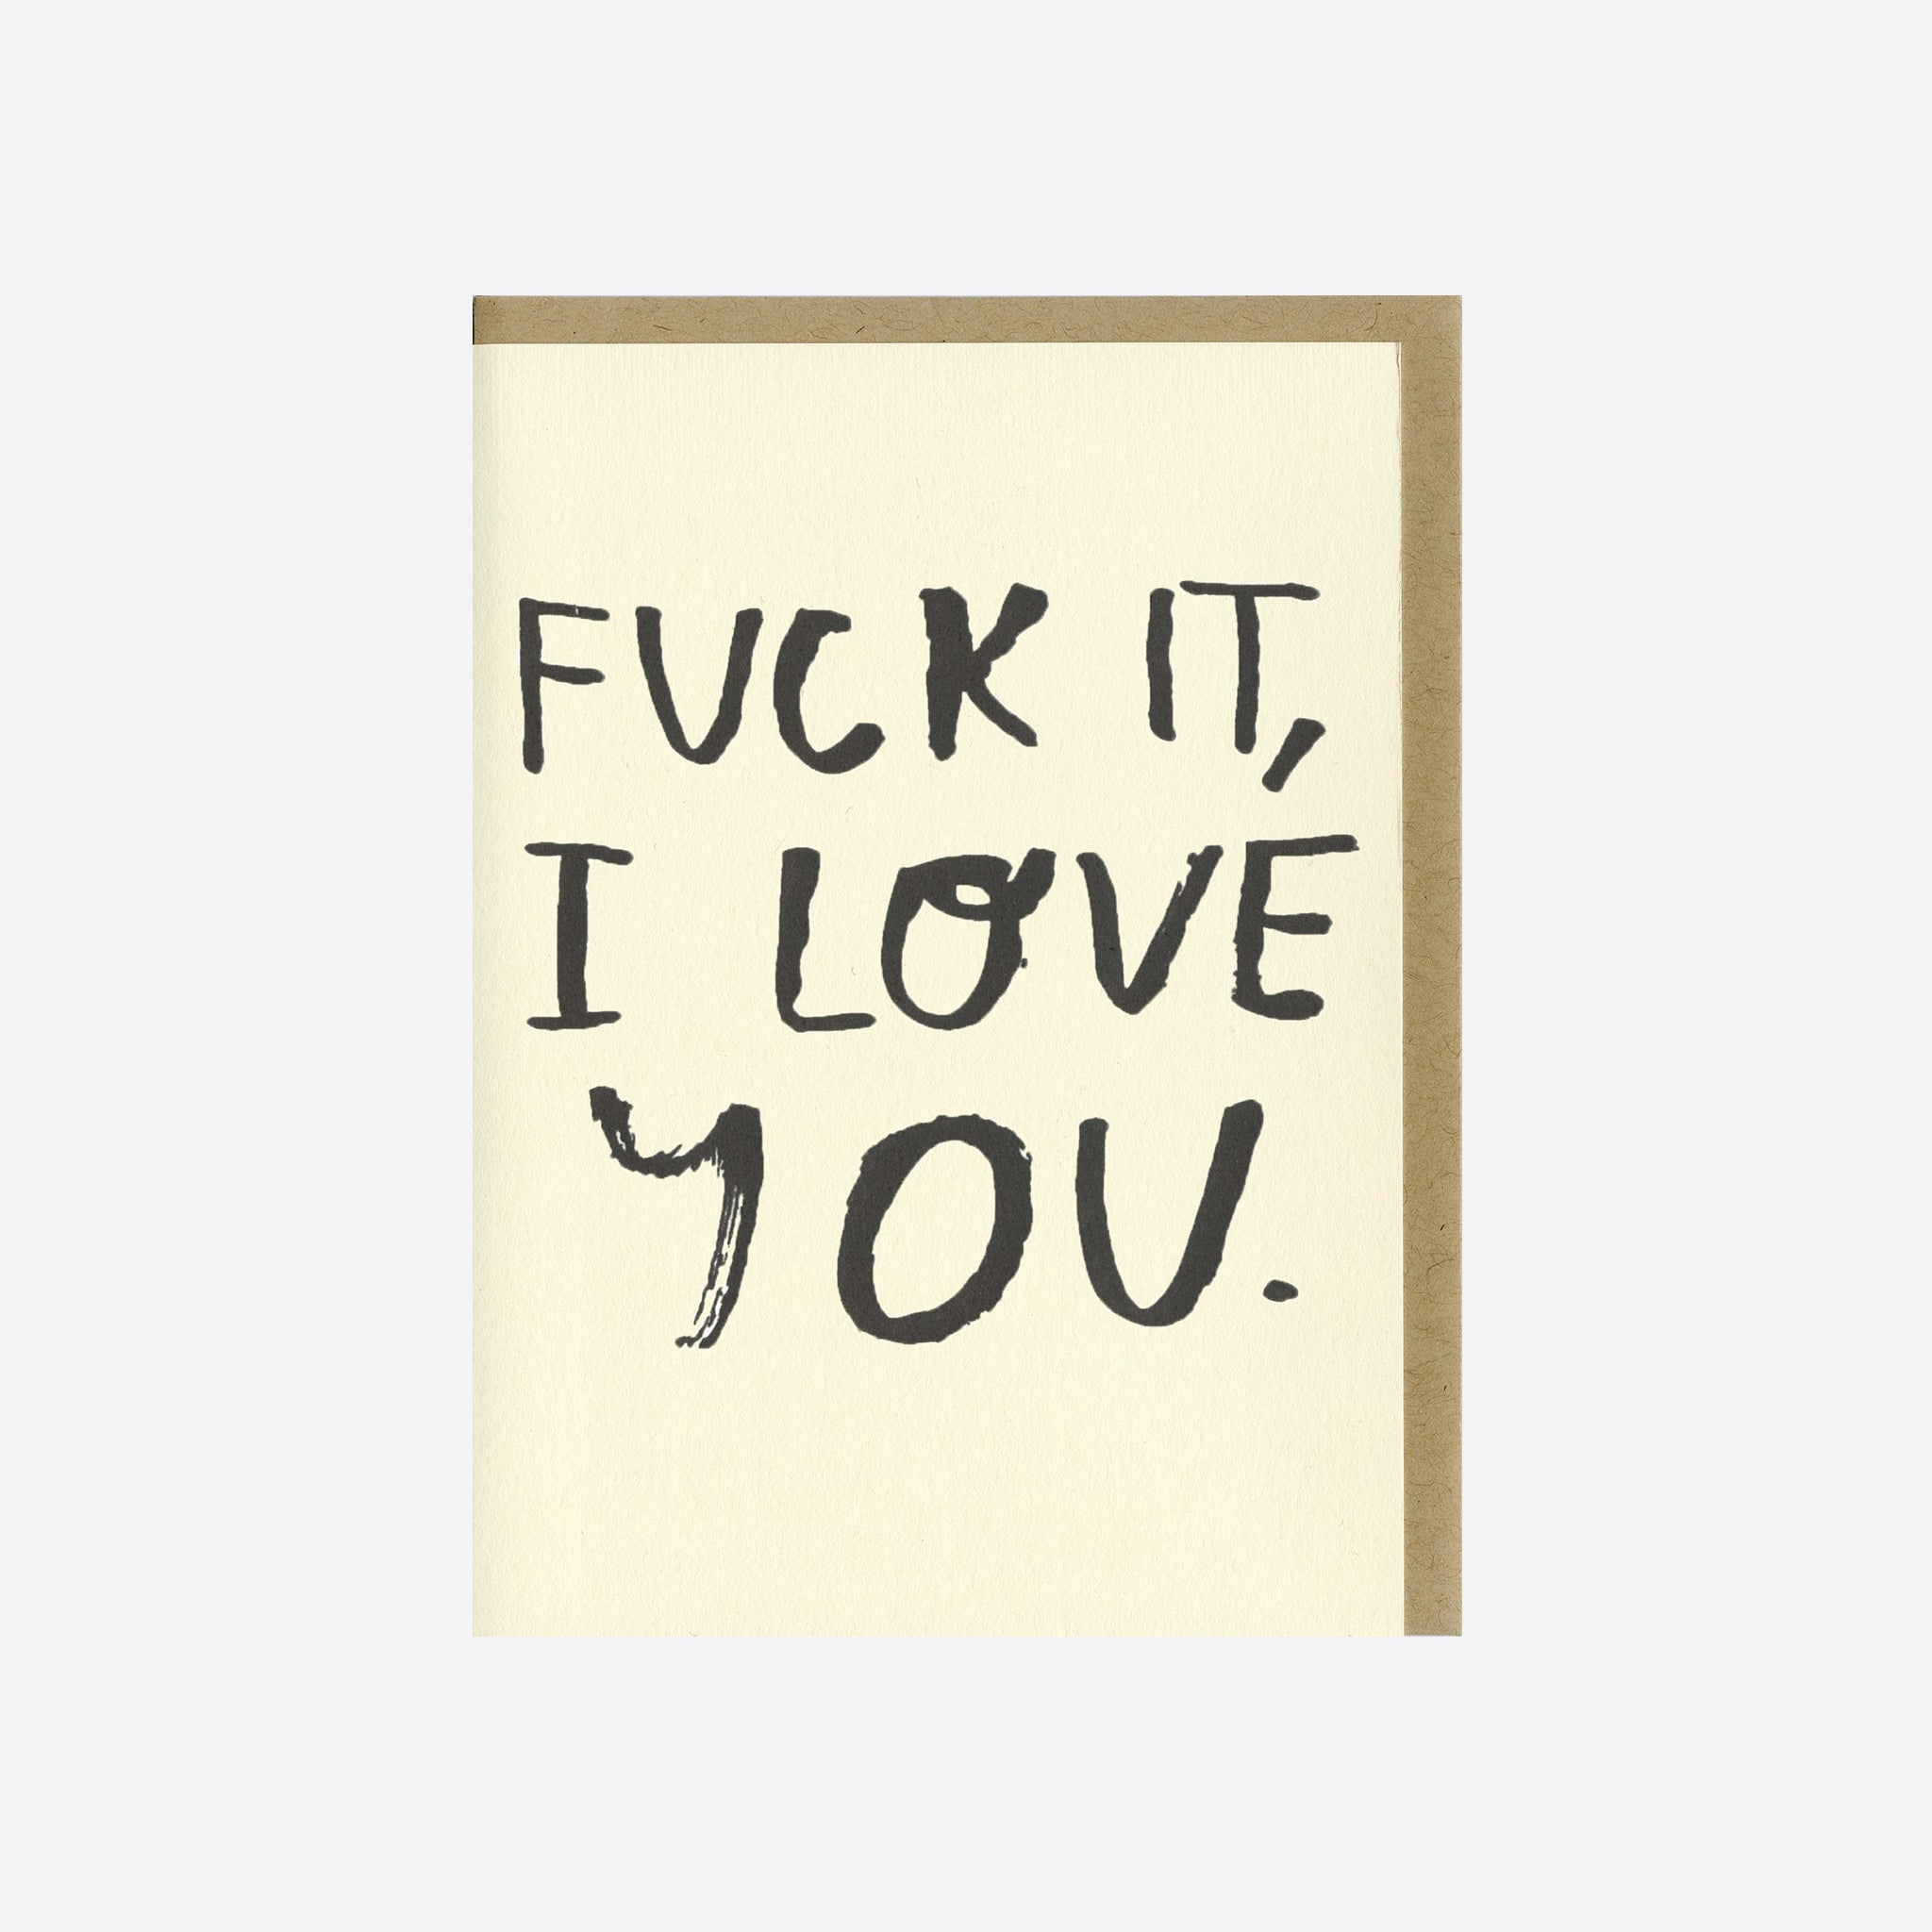 People I've Loved 'Fuck It, I Love You' Card